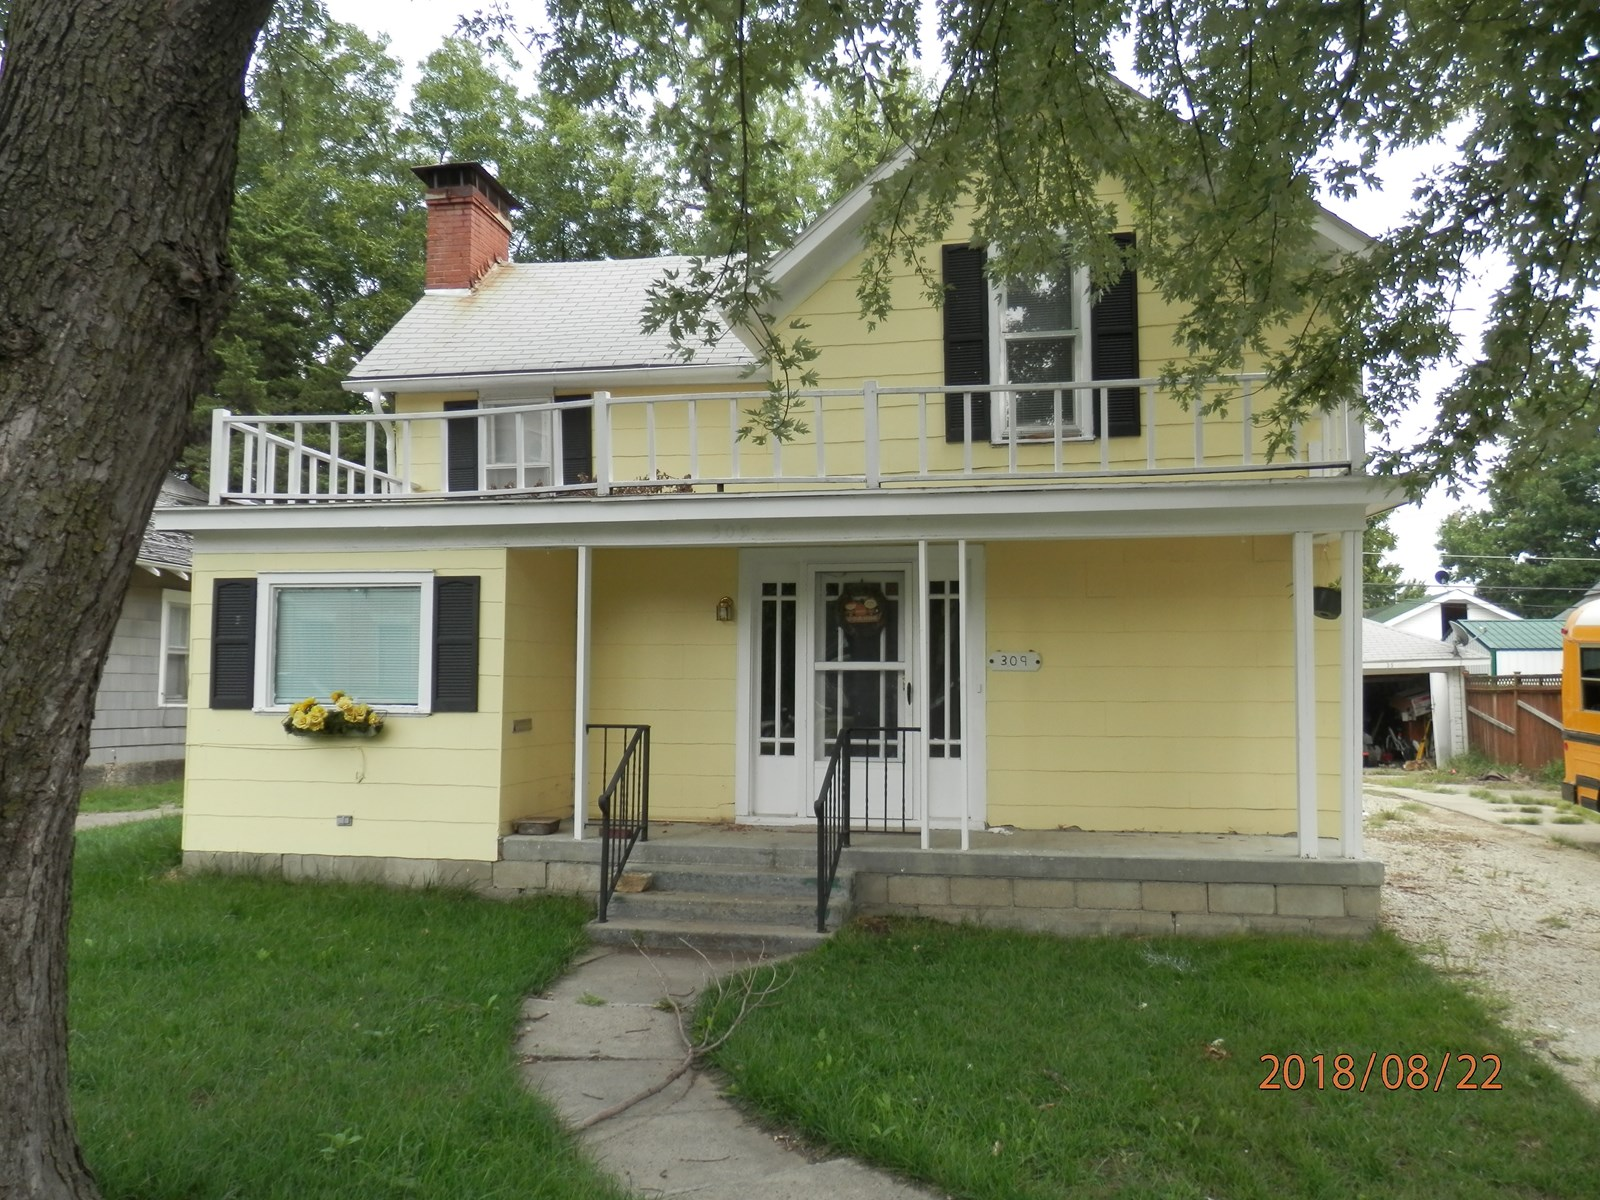 4 Bedroom home within walking distance of the Iola Square!